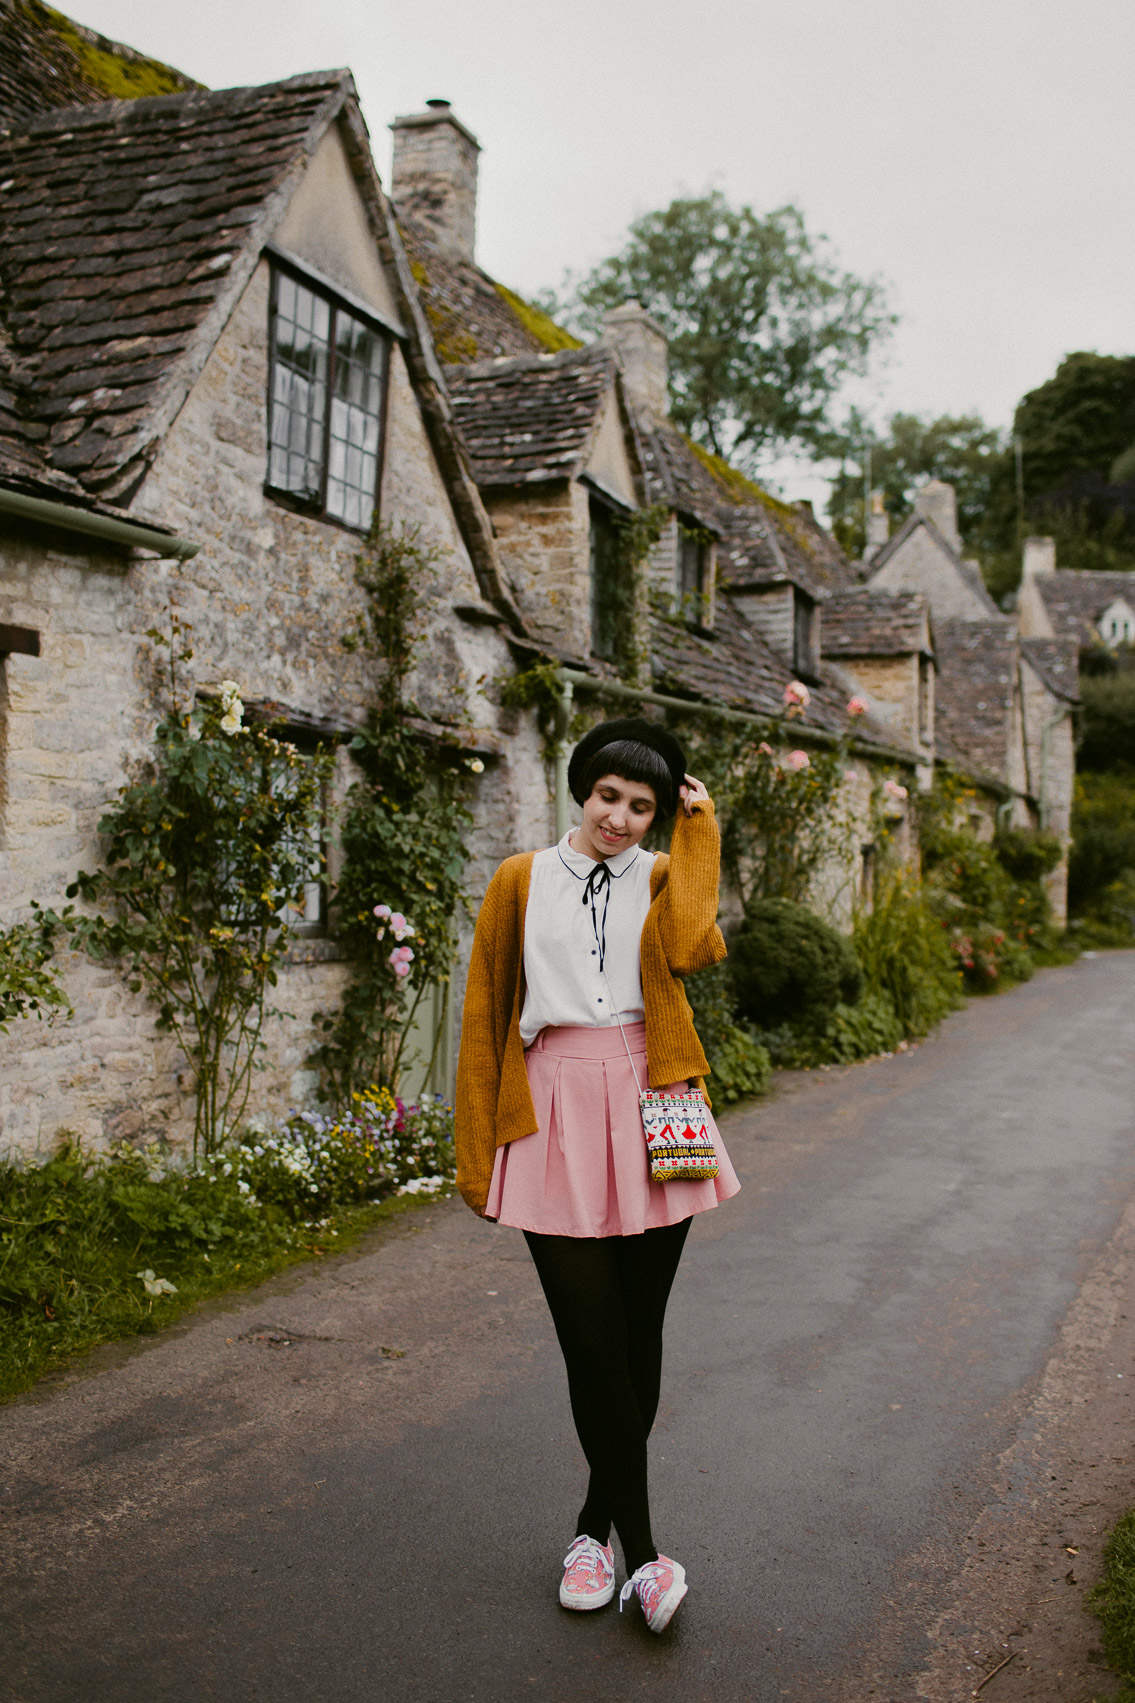 Bibury - The cat, you and us